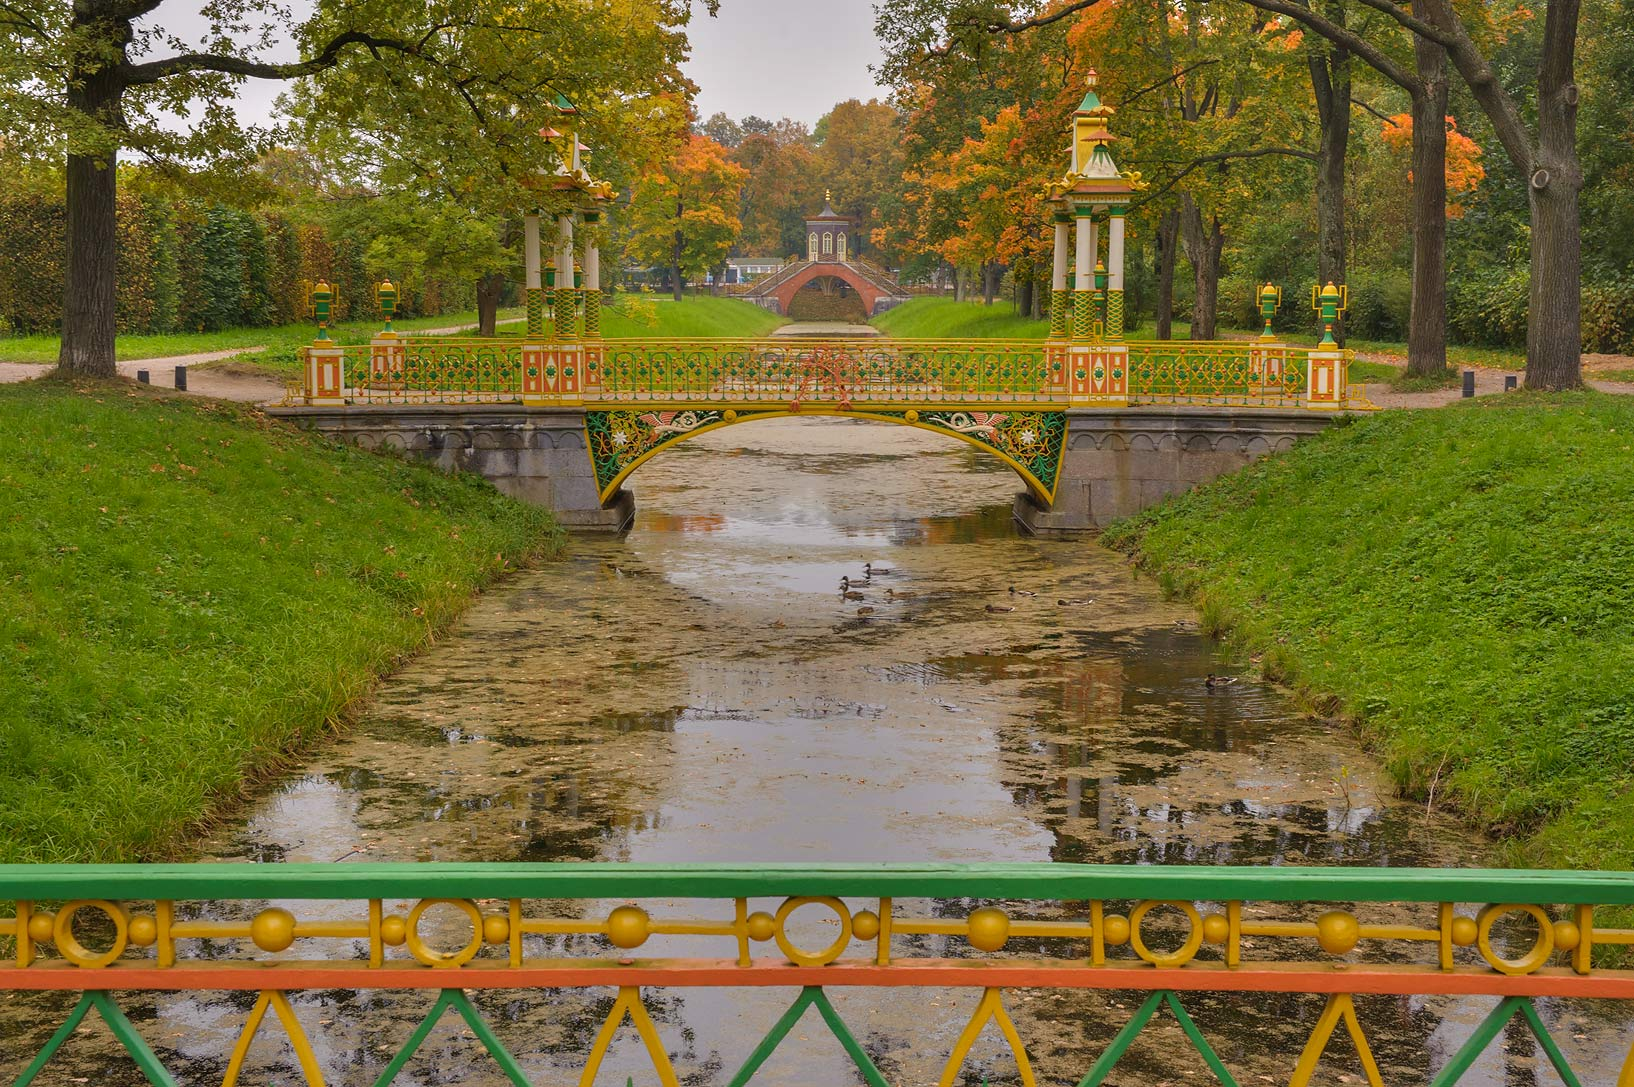 Chinese Bridges of Krestovy Canal in...Selo) near St.Petersburg, Russia